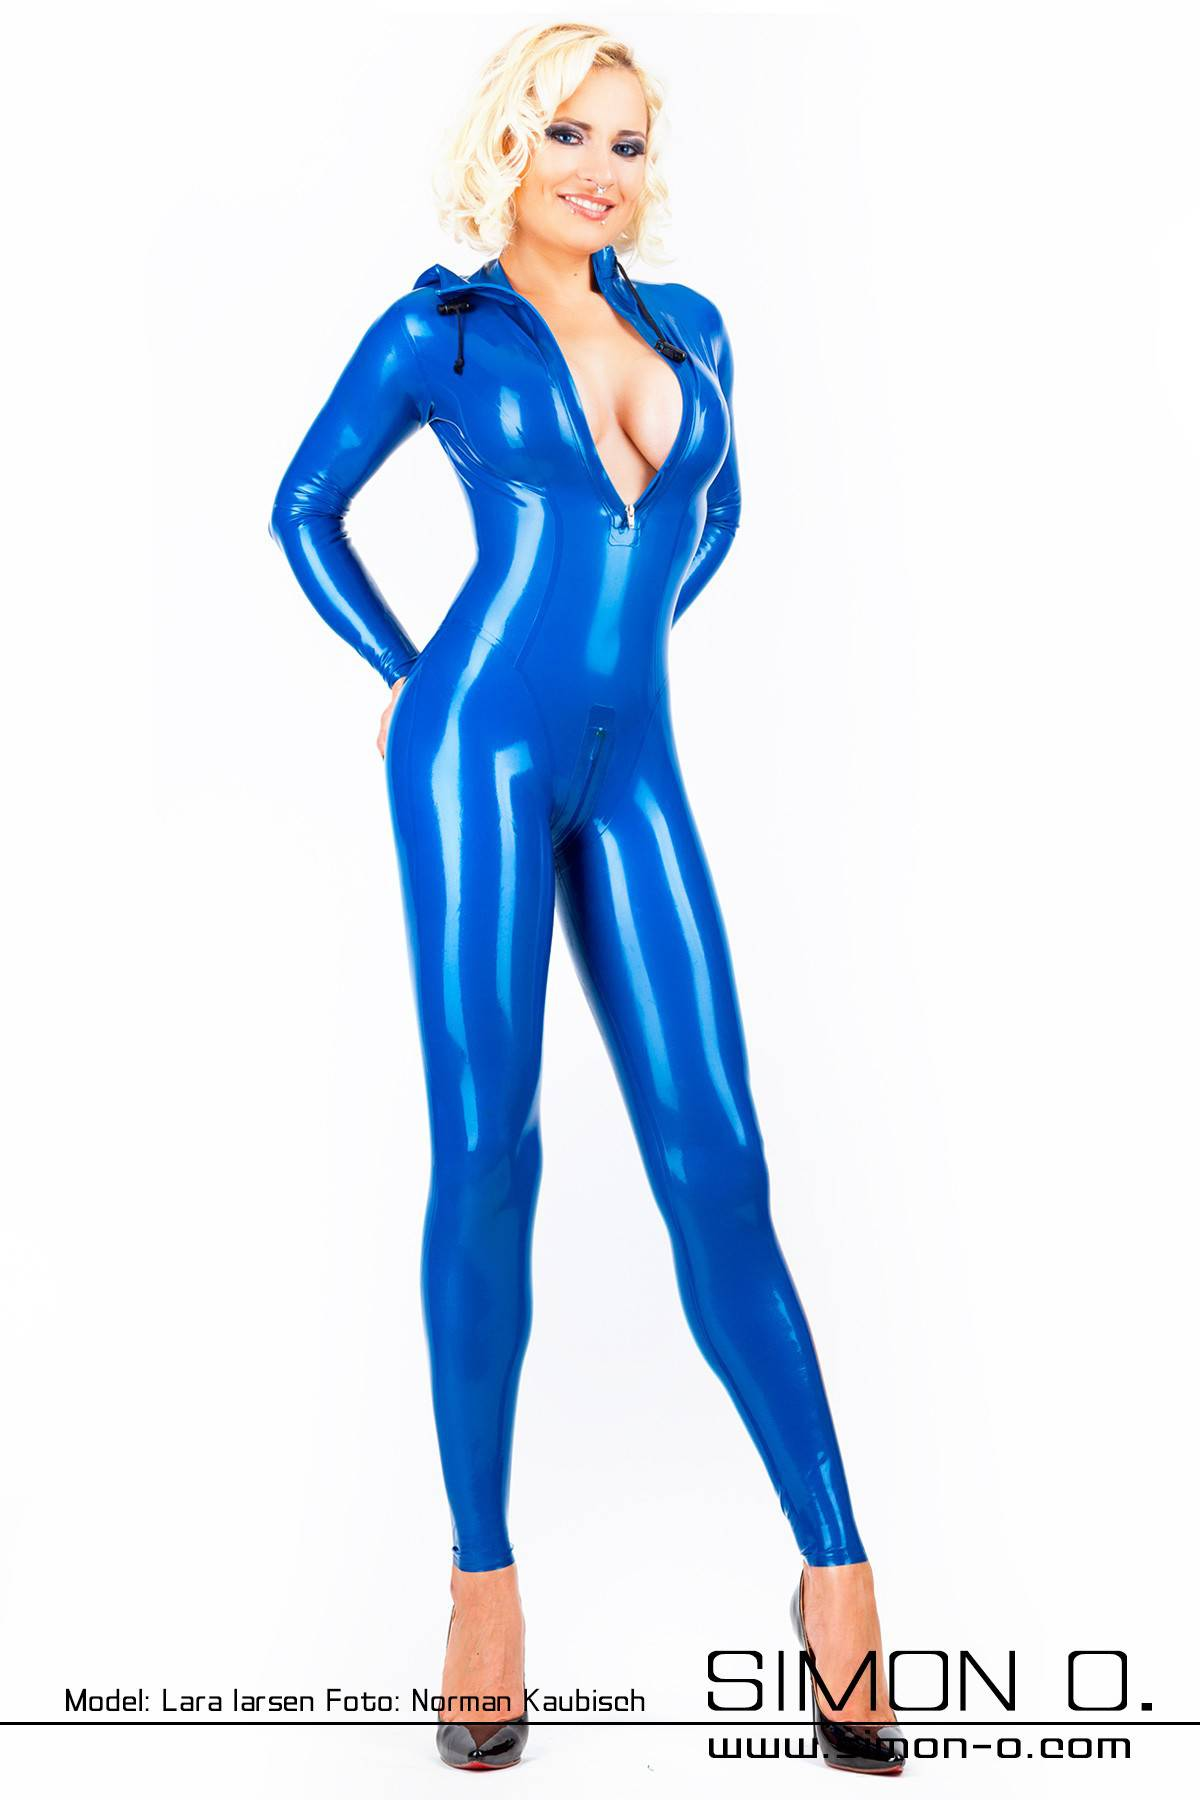 Blonde woman in a blue latex catsuit with hood The suit is skin tight and wet shiny